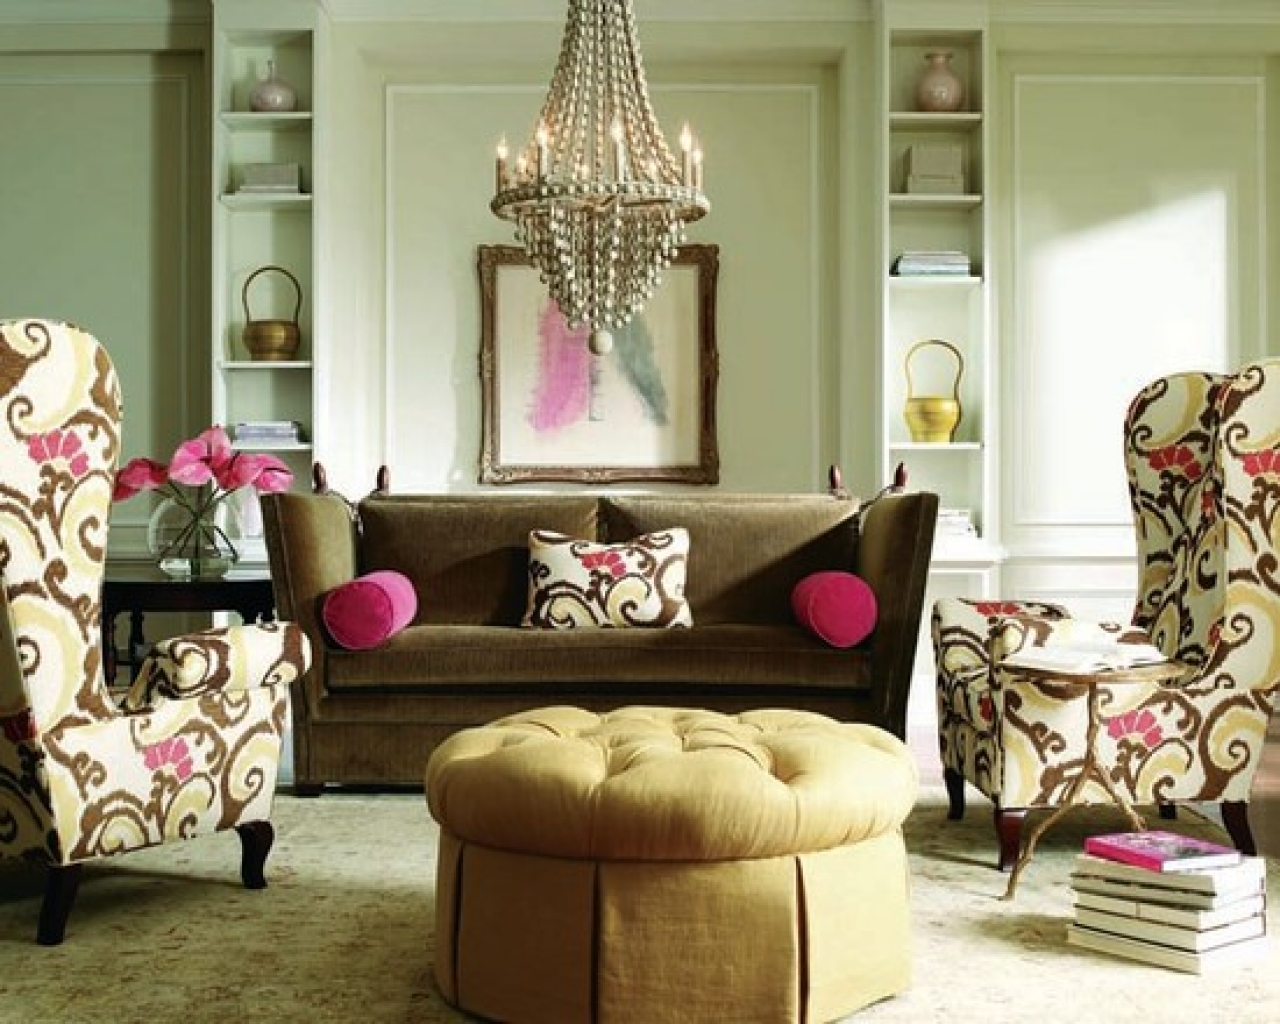 Eclectic-Living-Room-with-Pops-of-Color